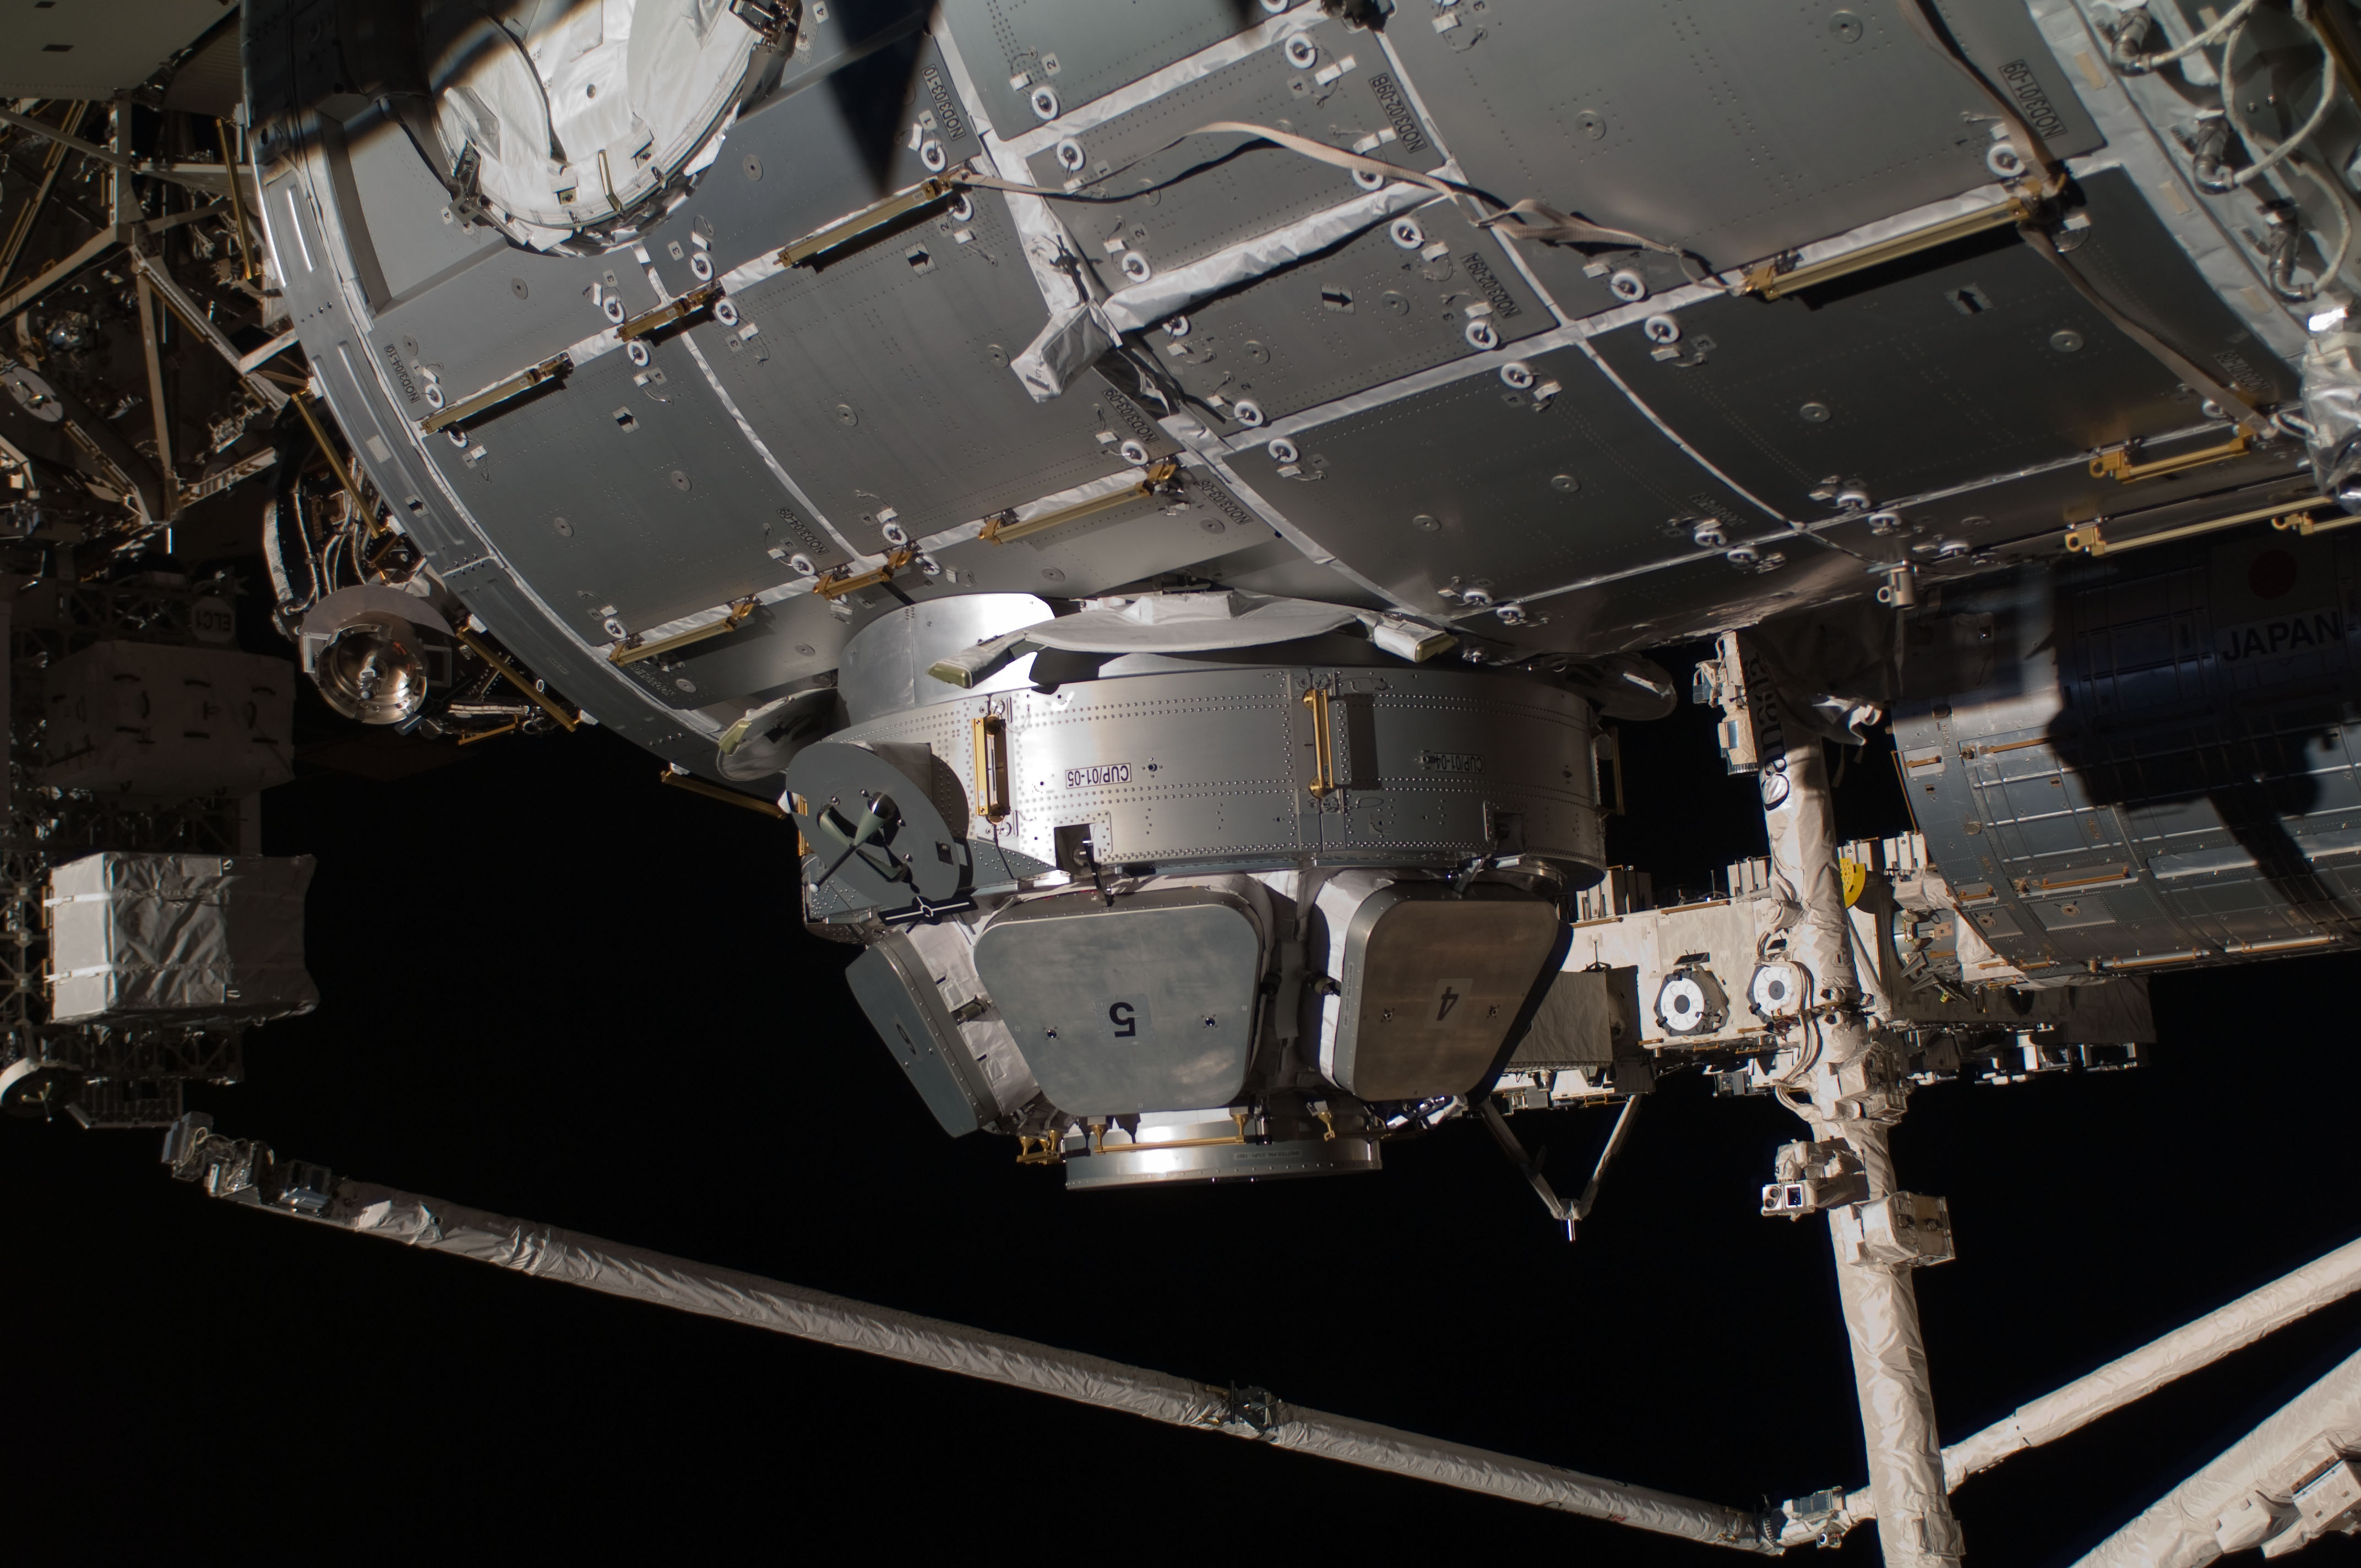 http://upload.wikimedia.org/wikipedia/commons/a/a3/ISS_STS-130_EVA3_Cupola.jpg